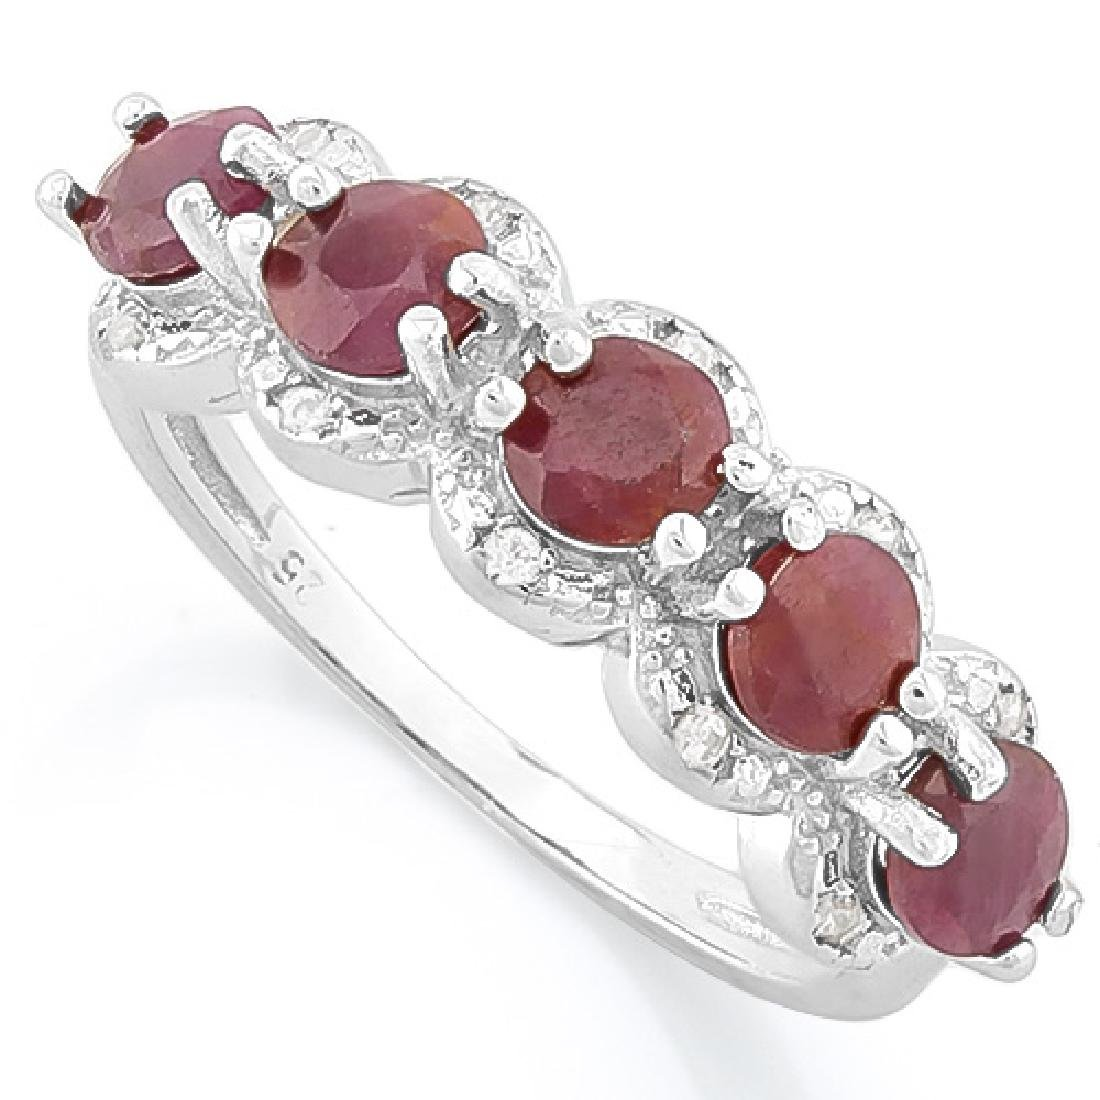 9 1/5 CARAT RUBY & DIAMOND 925 STERLING SILVER RING